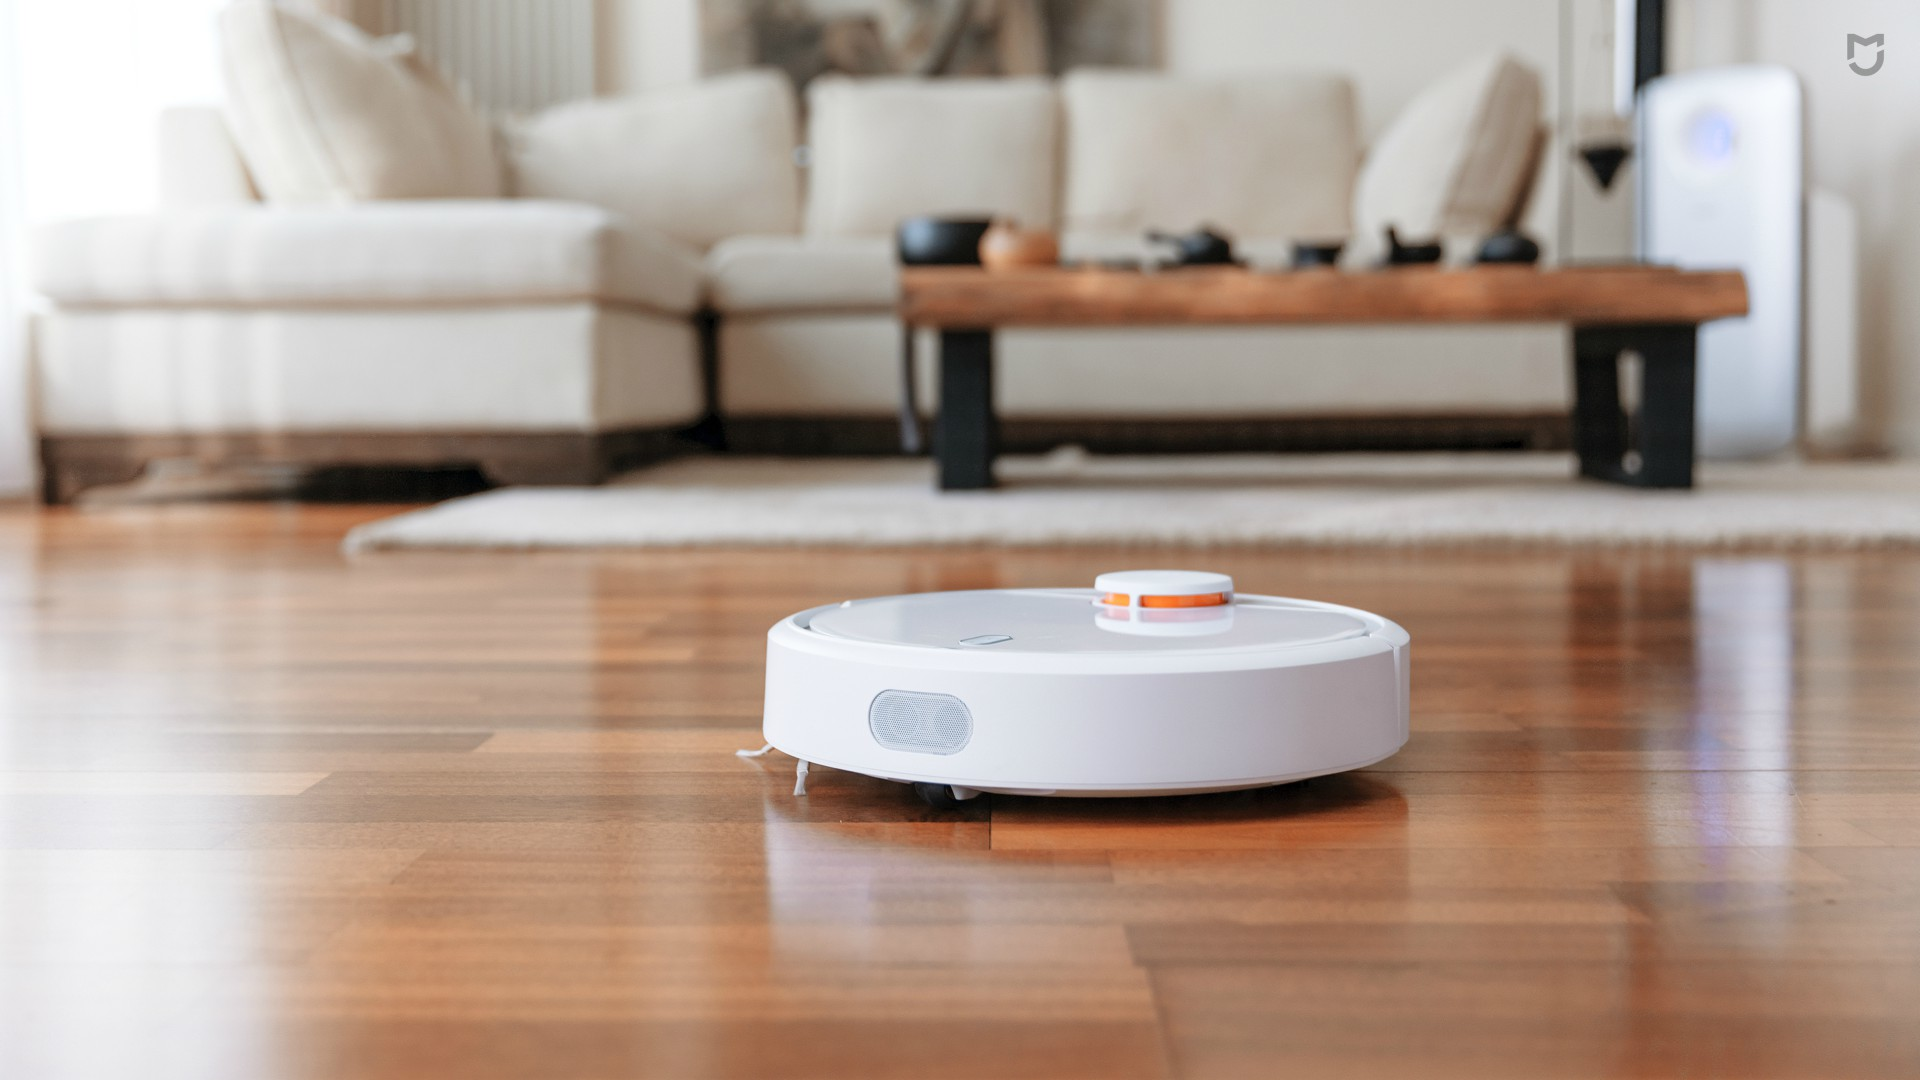 Xiaomis Robot Vacuum Sucks More Than Its Peers